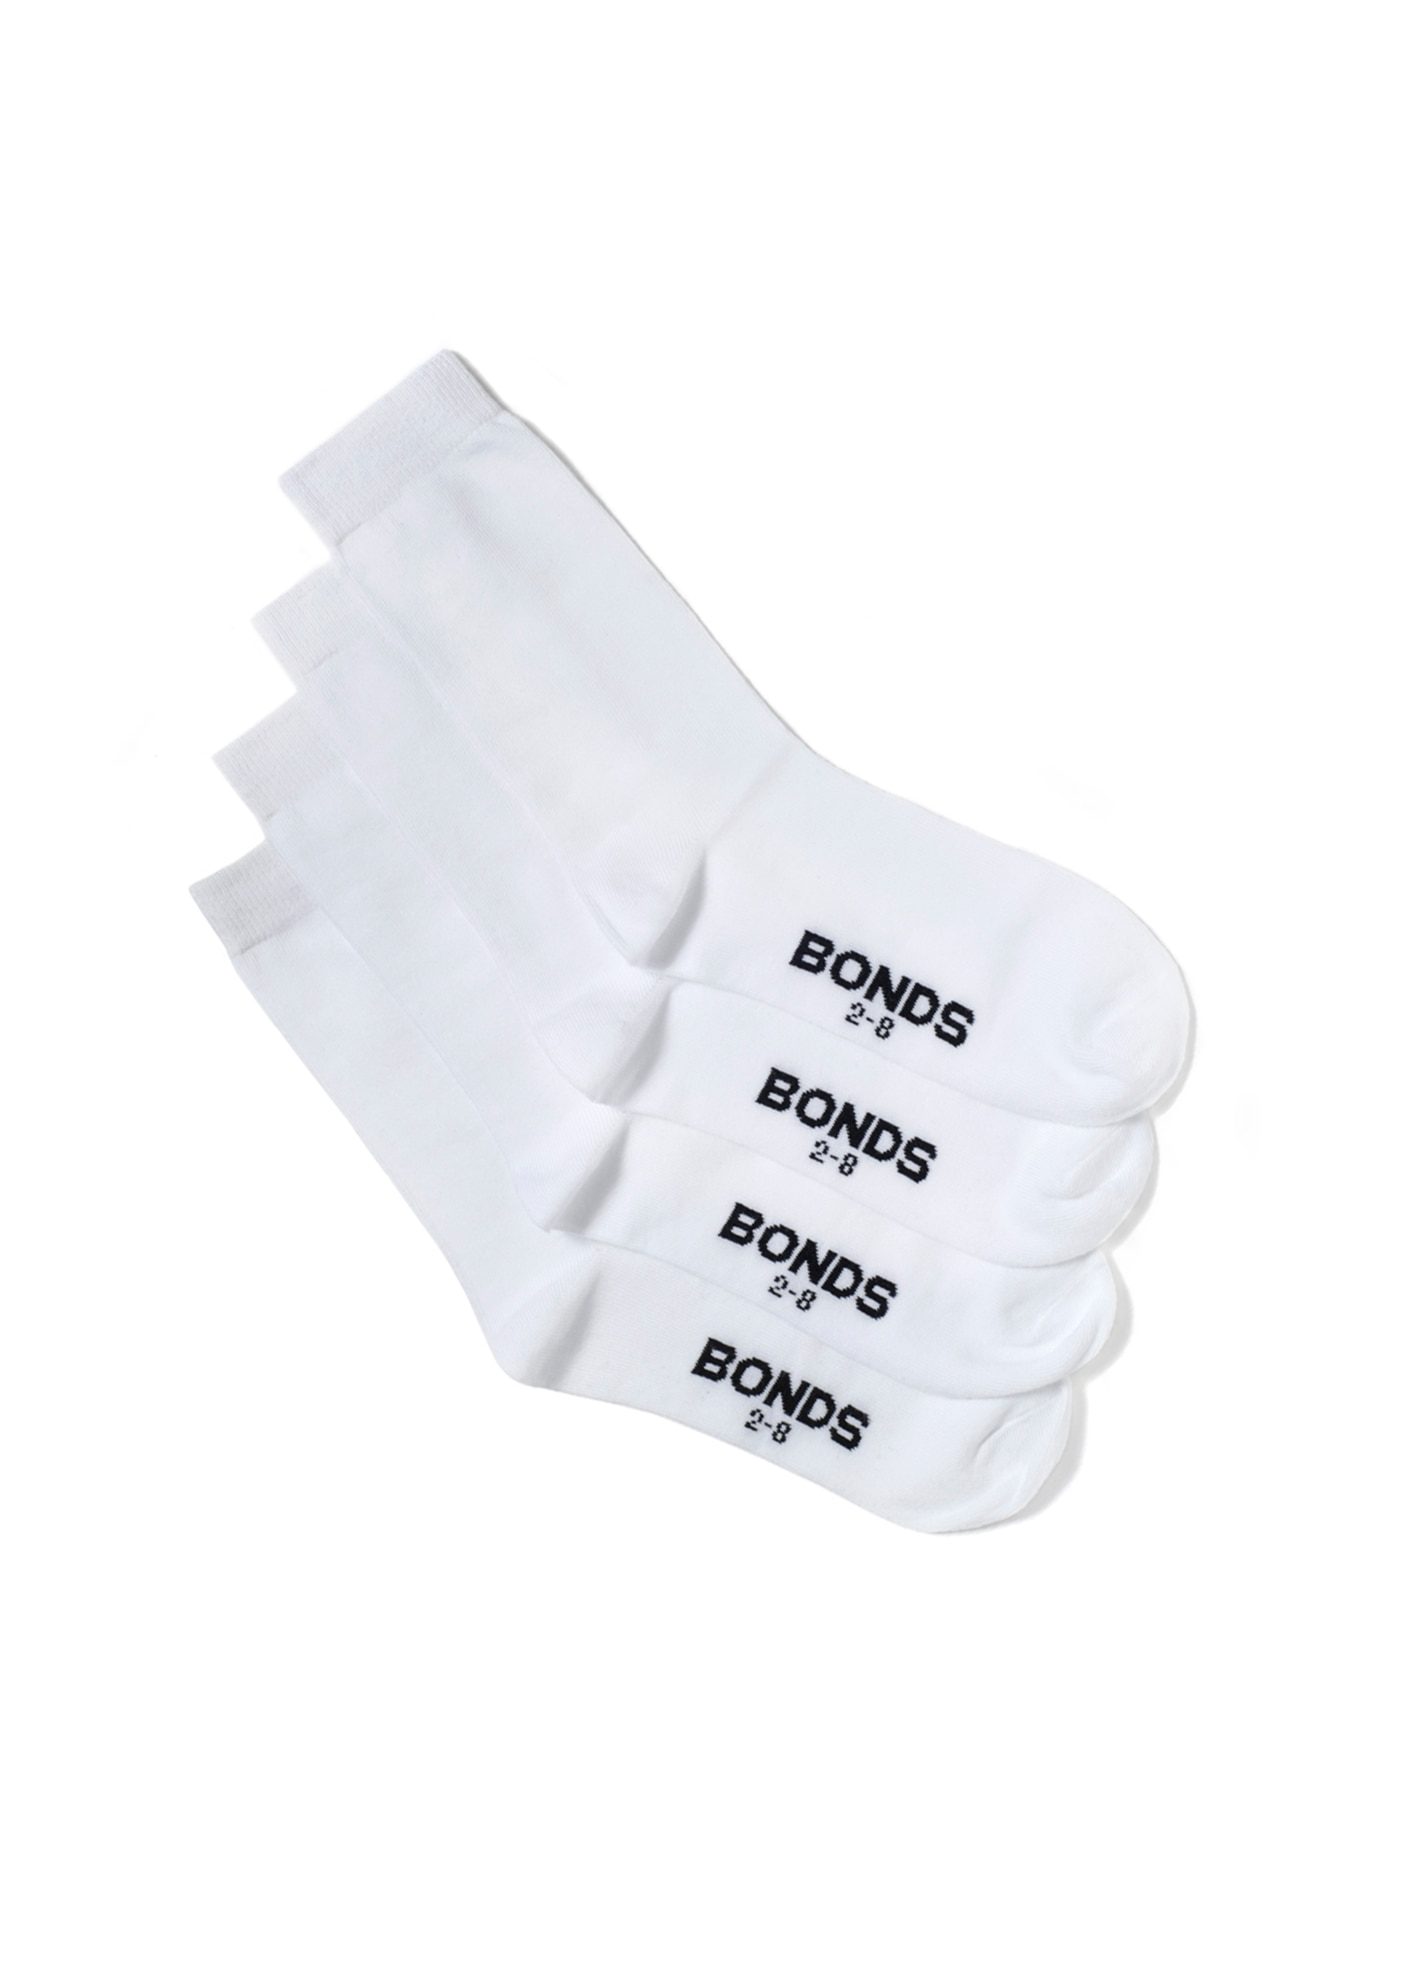 Bonds Kids School Oxford Crew Socks 4pk - White / 3-8 (10+ Years)